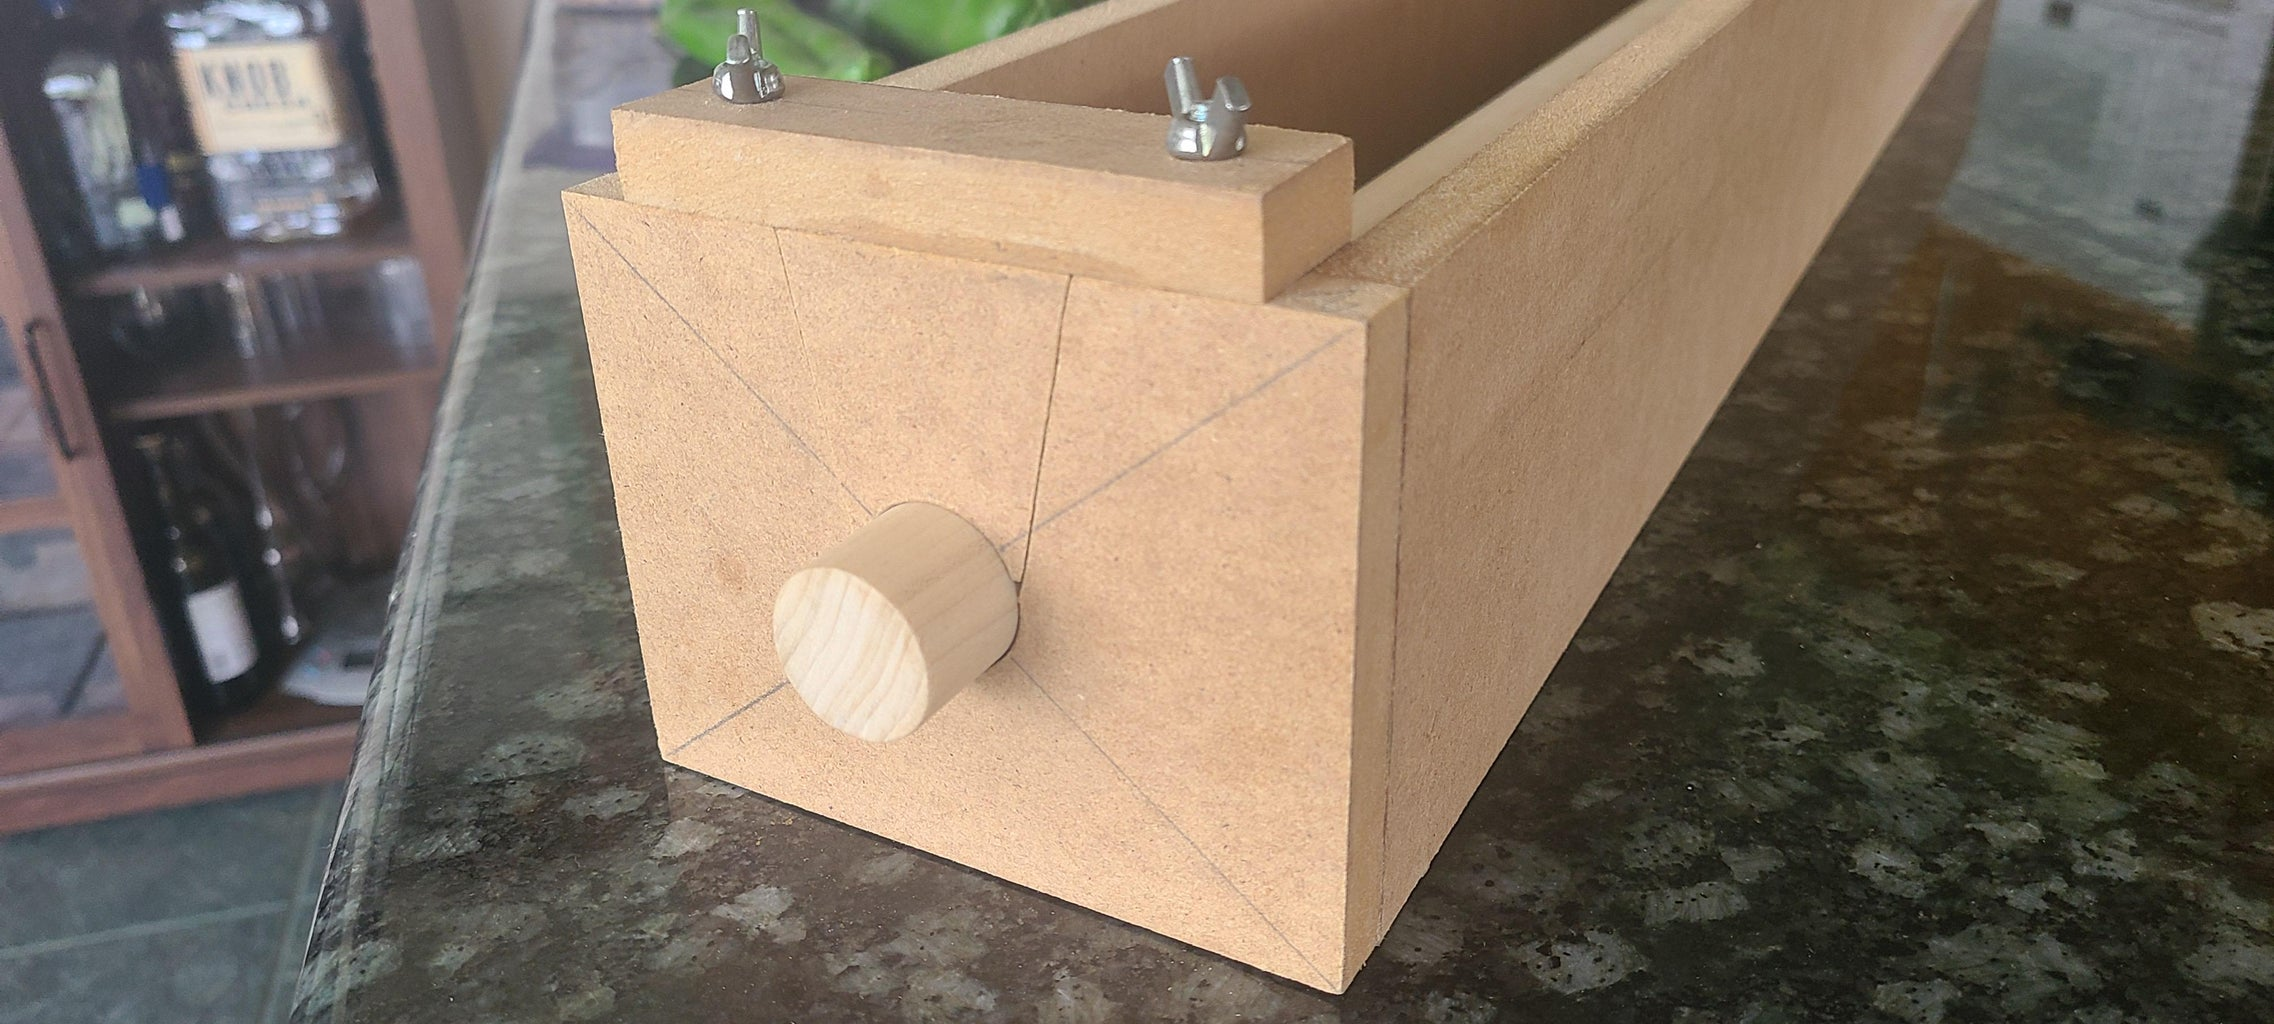 Designing and Building the Cylinder Jig